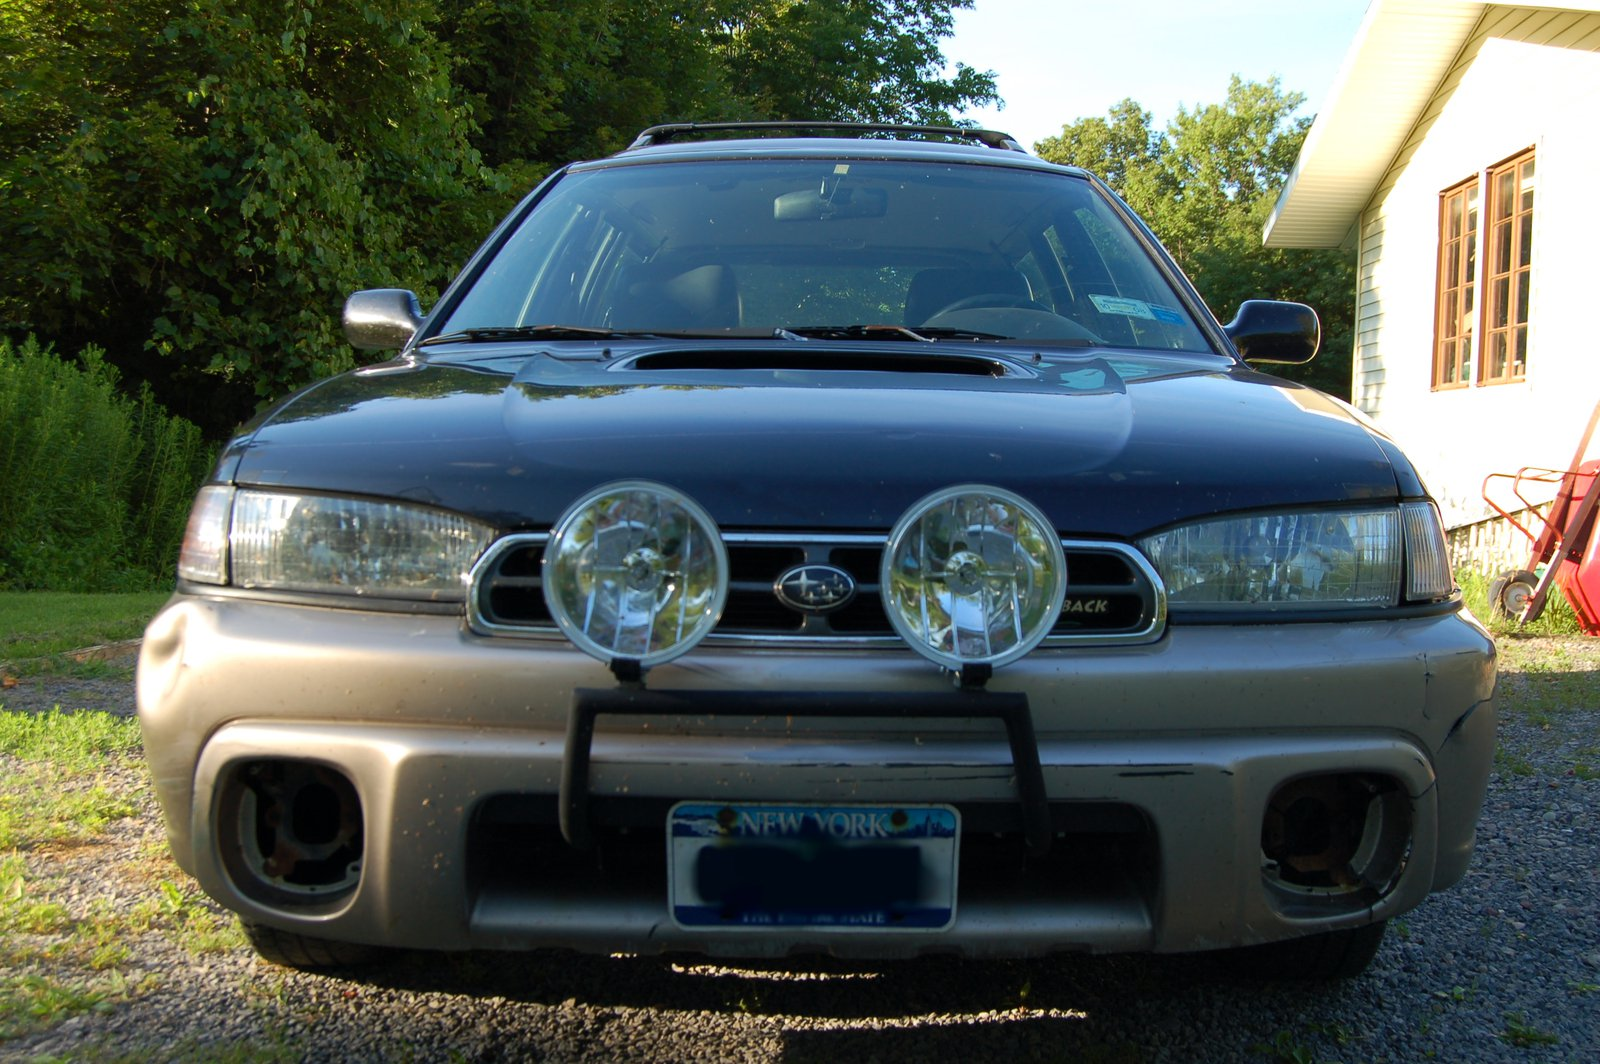 Suby Lightbar - 1 of 5